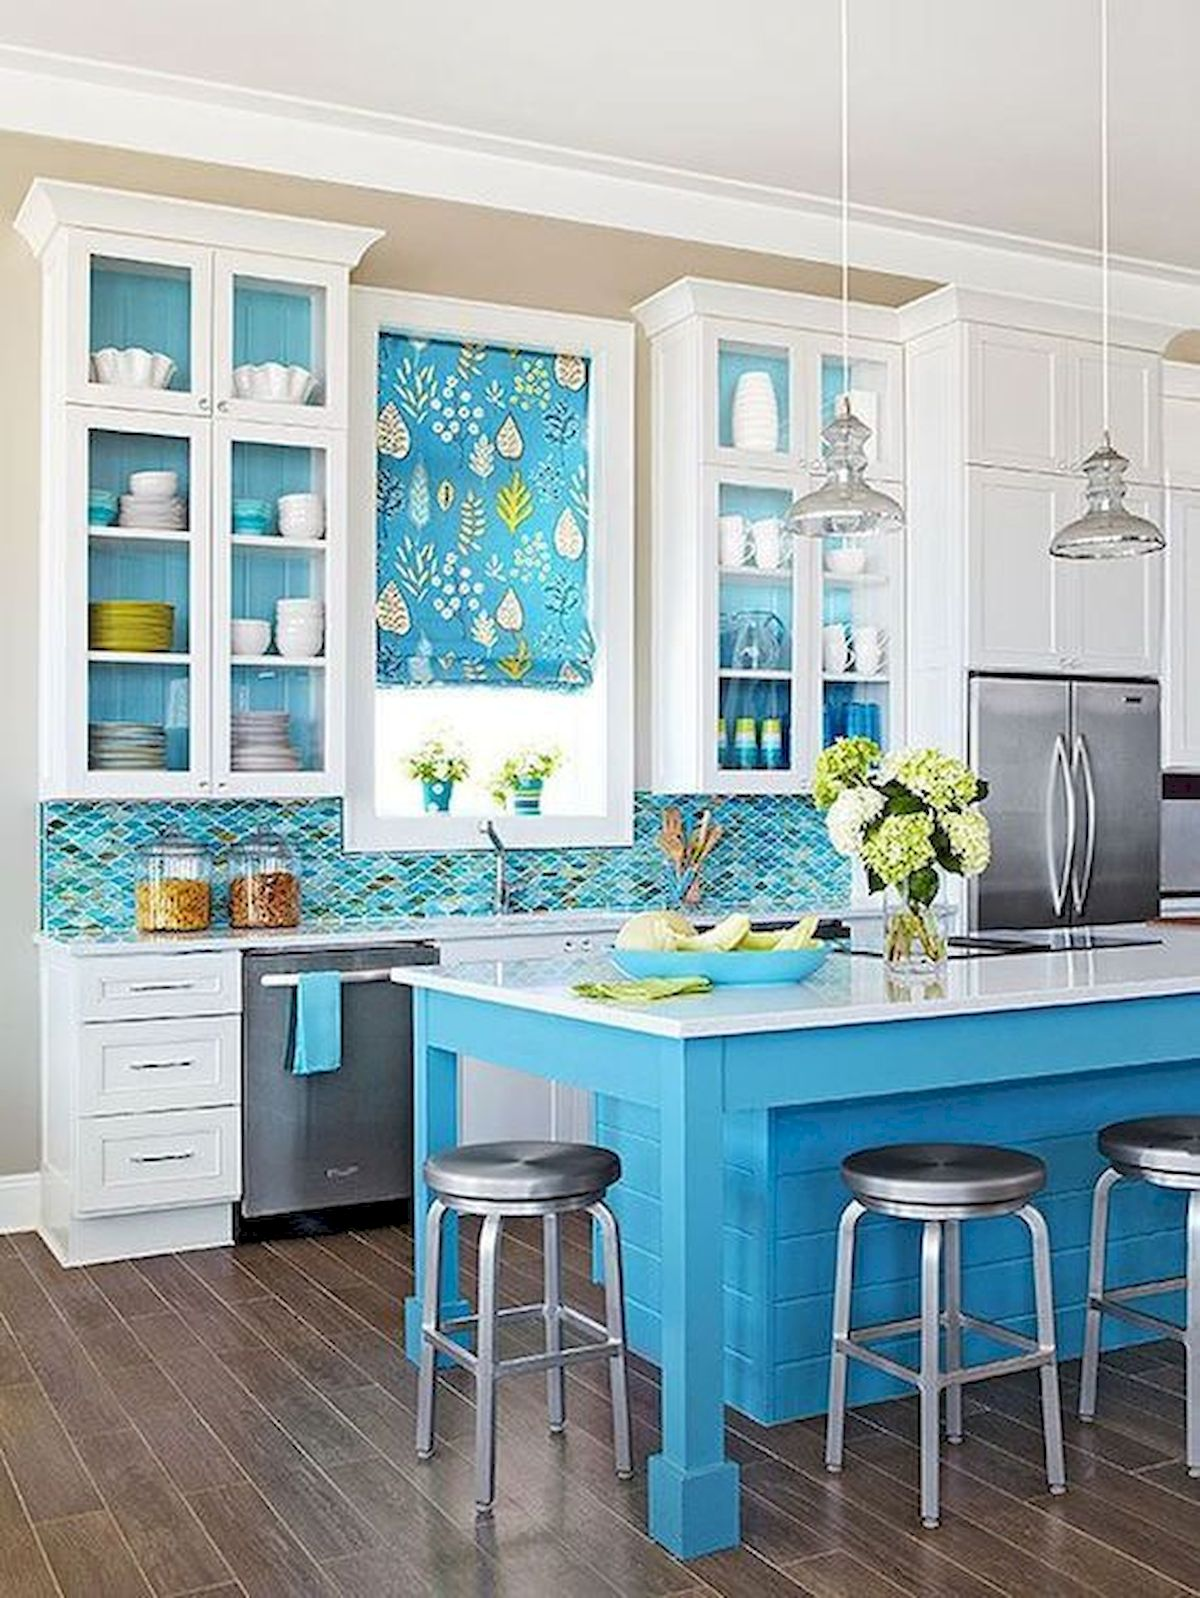 90 Amazing Kitchen Remodel and Decor Ideas With Colorful Design (84)